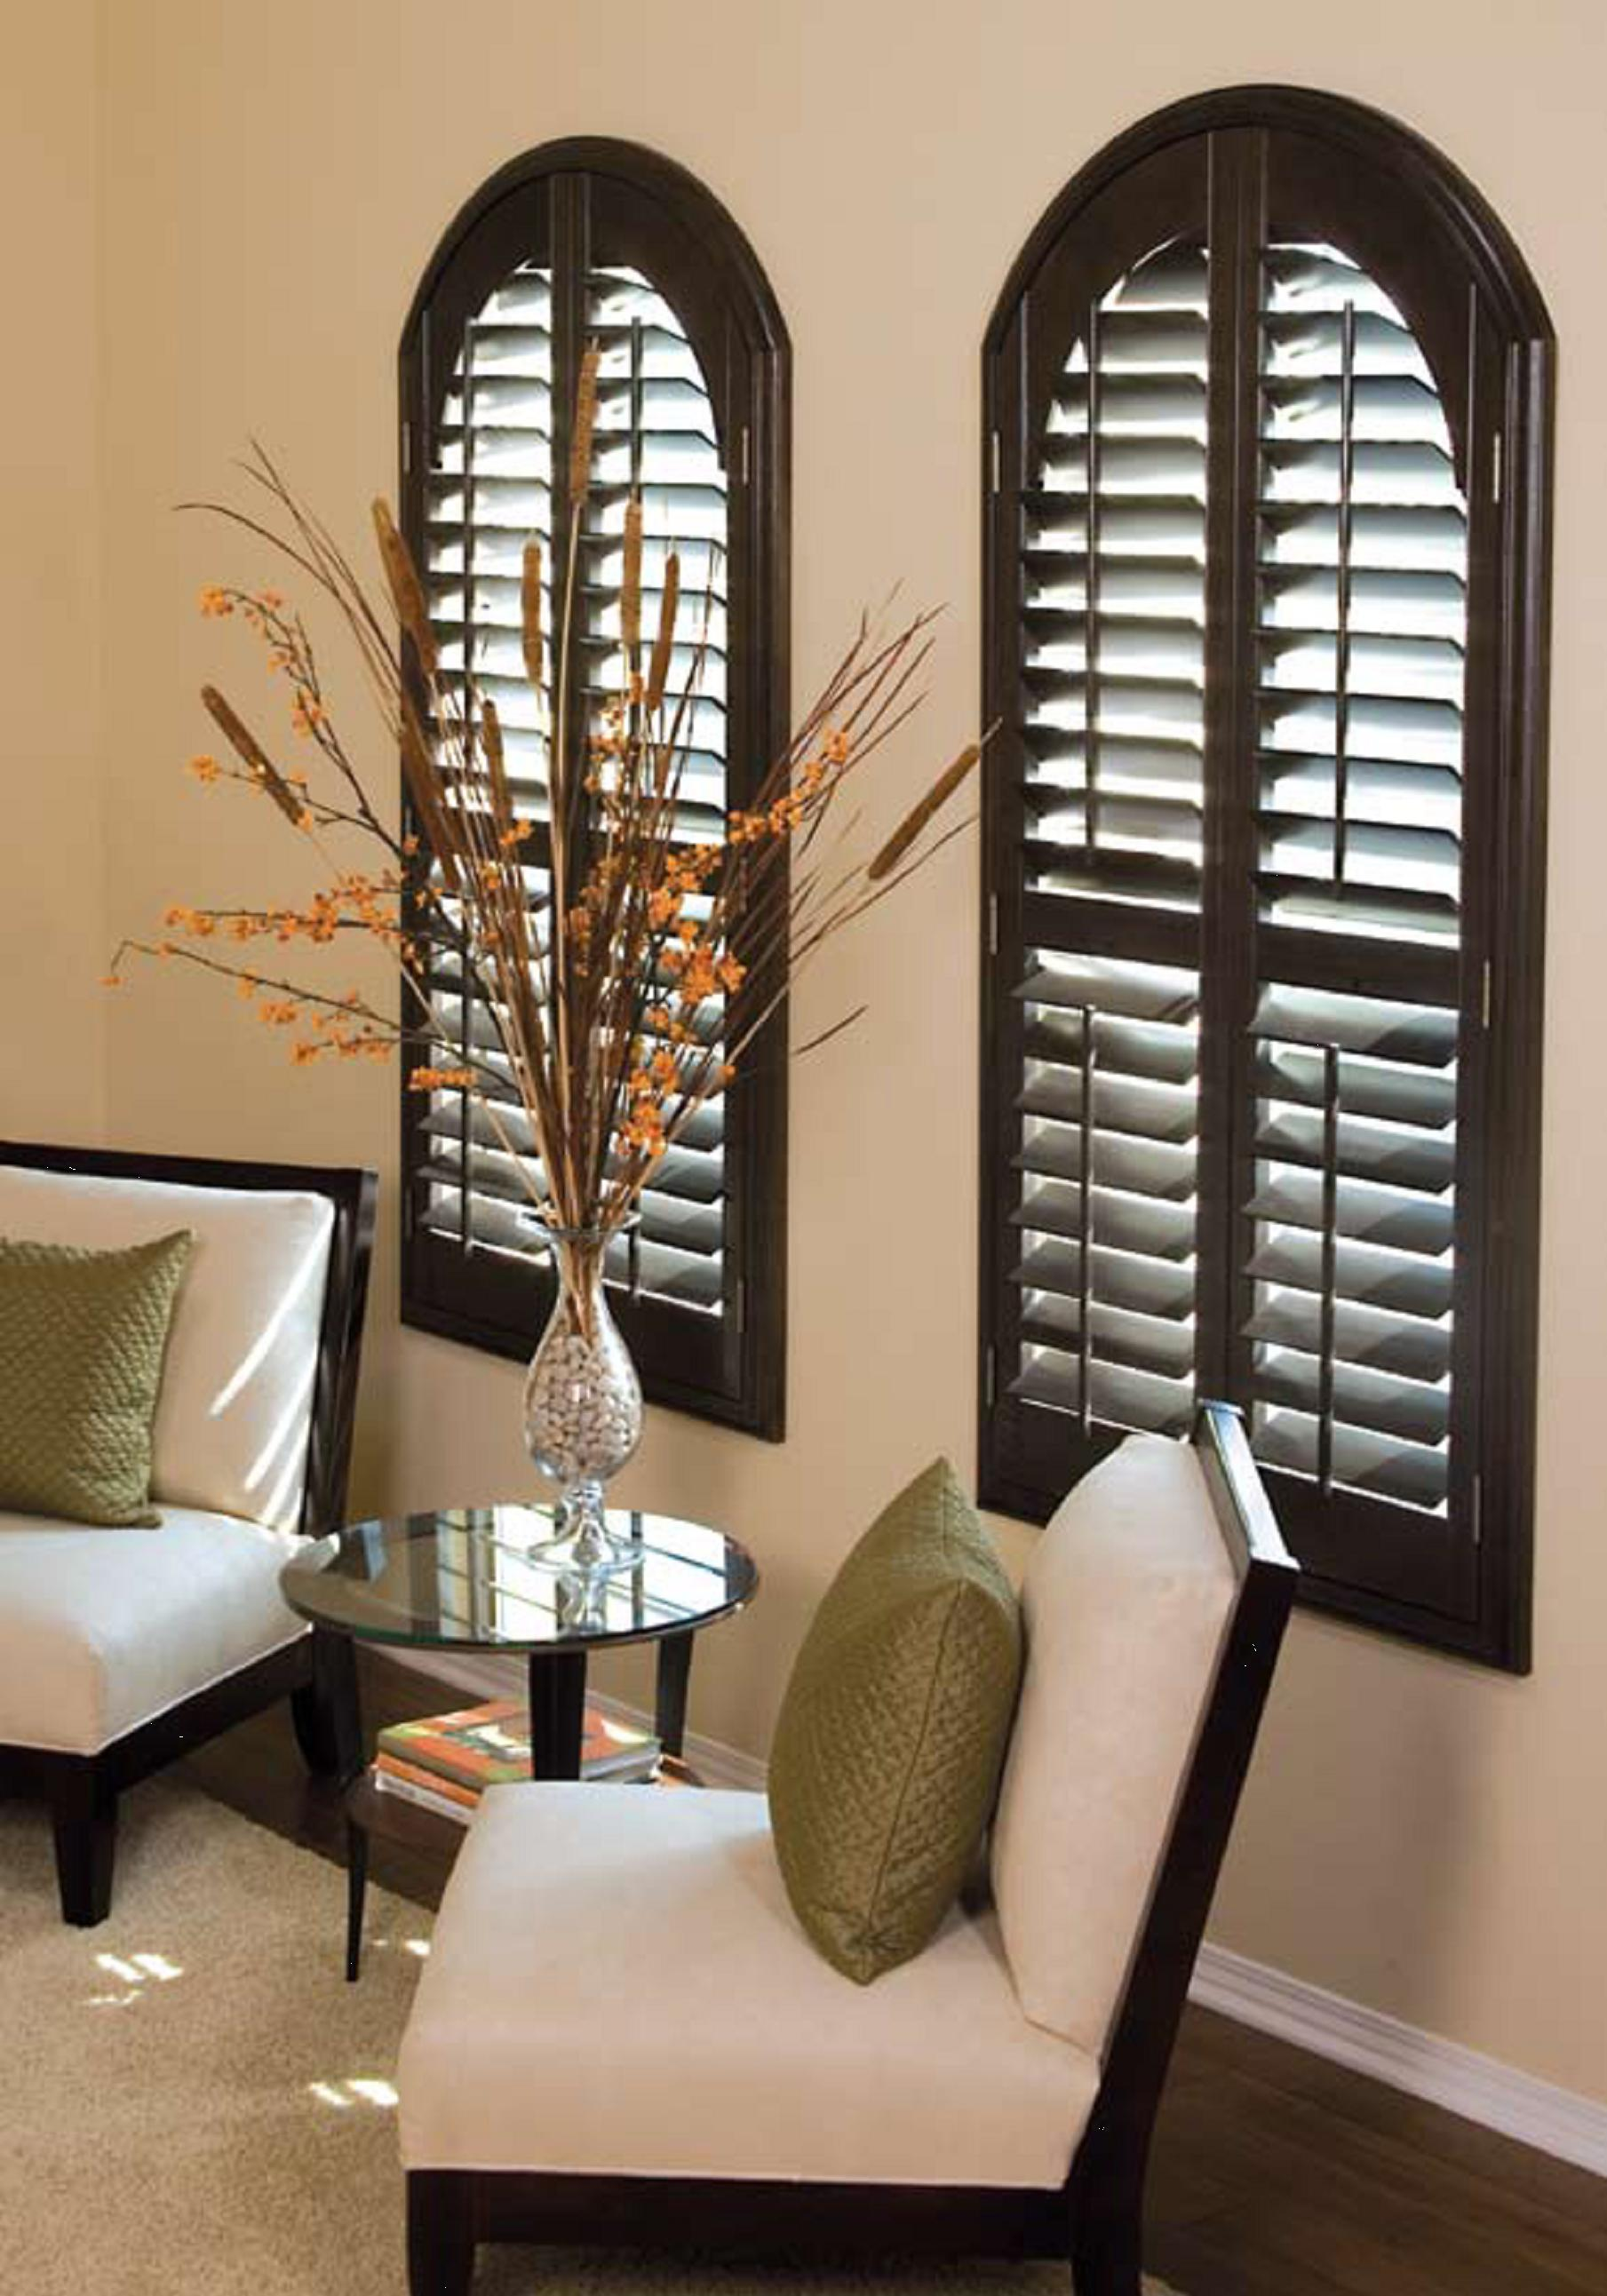 wood villa shutters and archives woodlore tag shutter img blind norman blinds